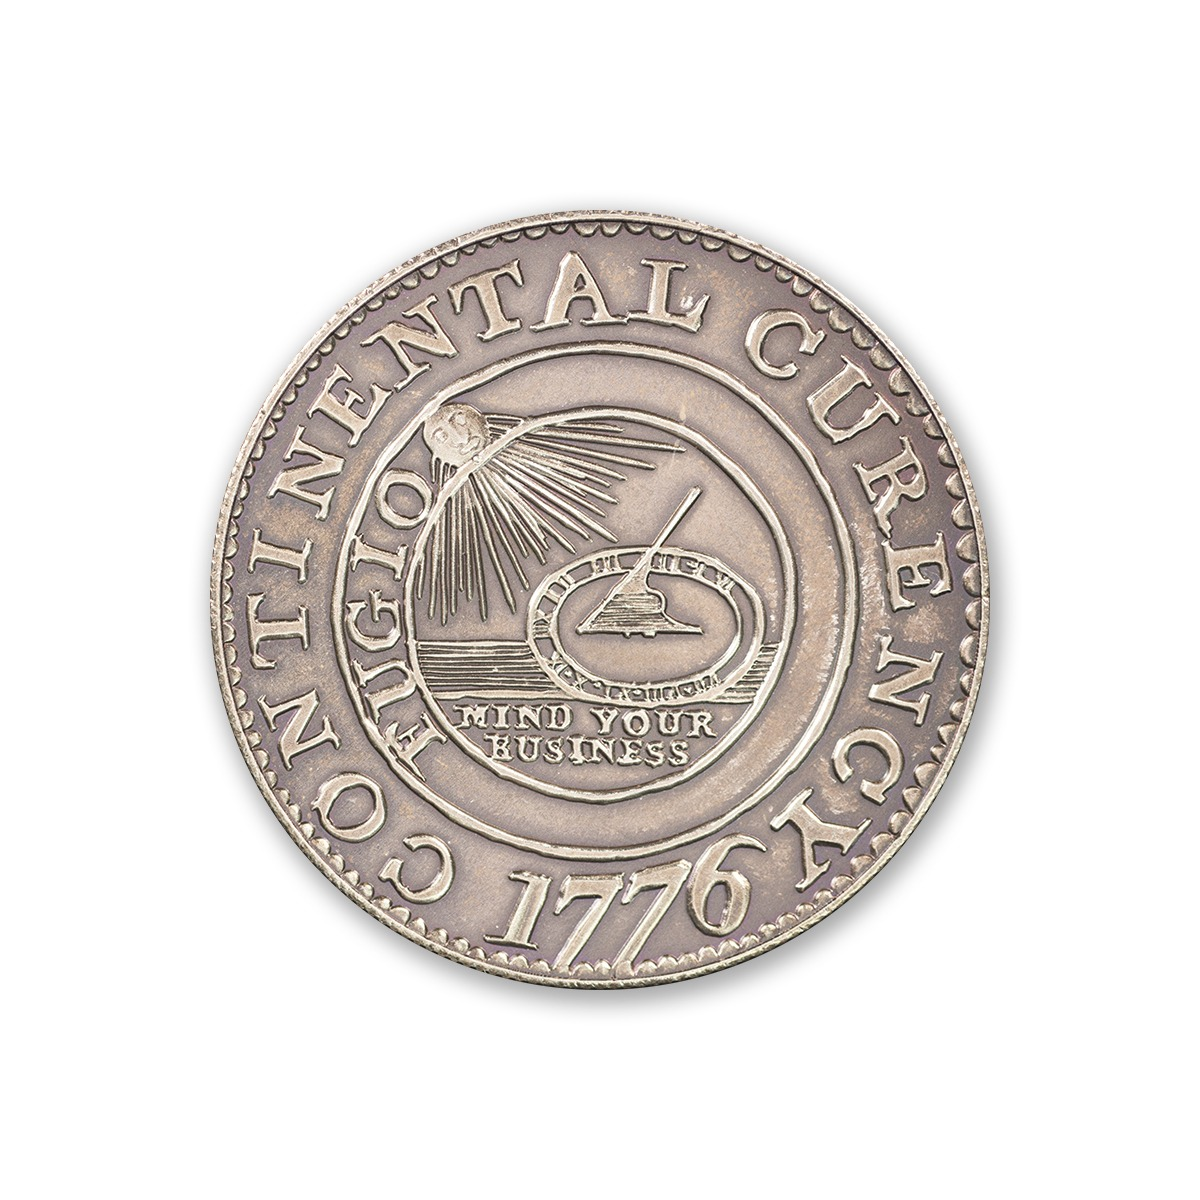 CONTINENTAL DOLLAR – 2 TROY OUNCE – 39MM (ANTIQUED)